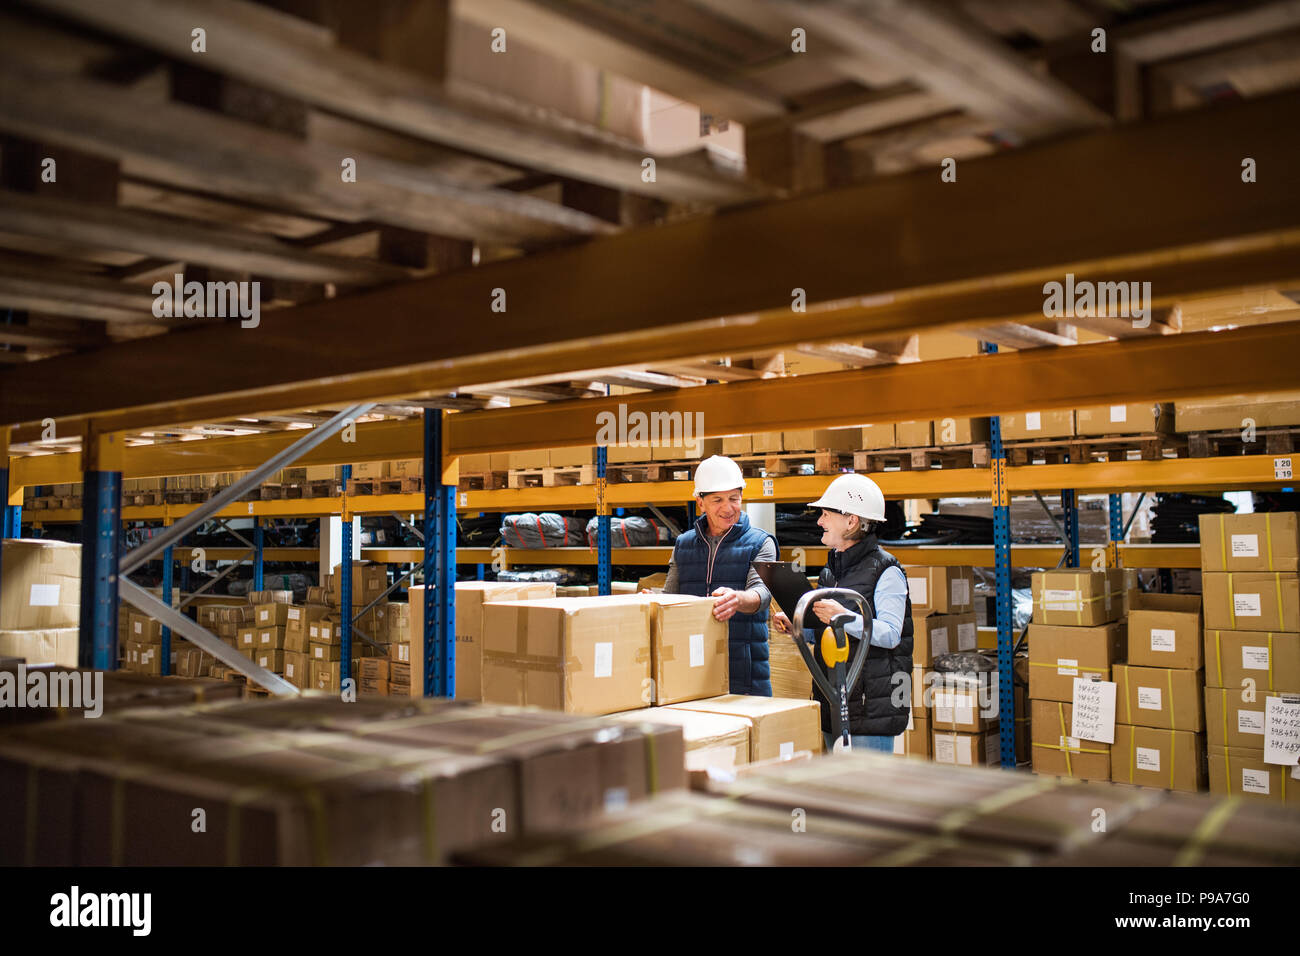 Senior woman and man managers or supervisors working in a warehouse. - Stock Image